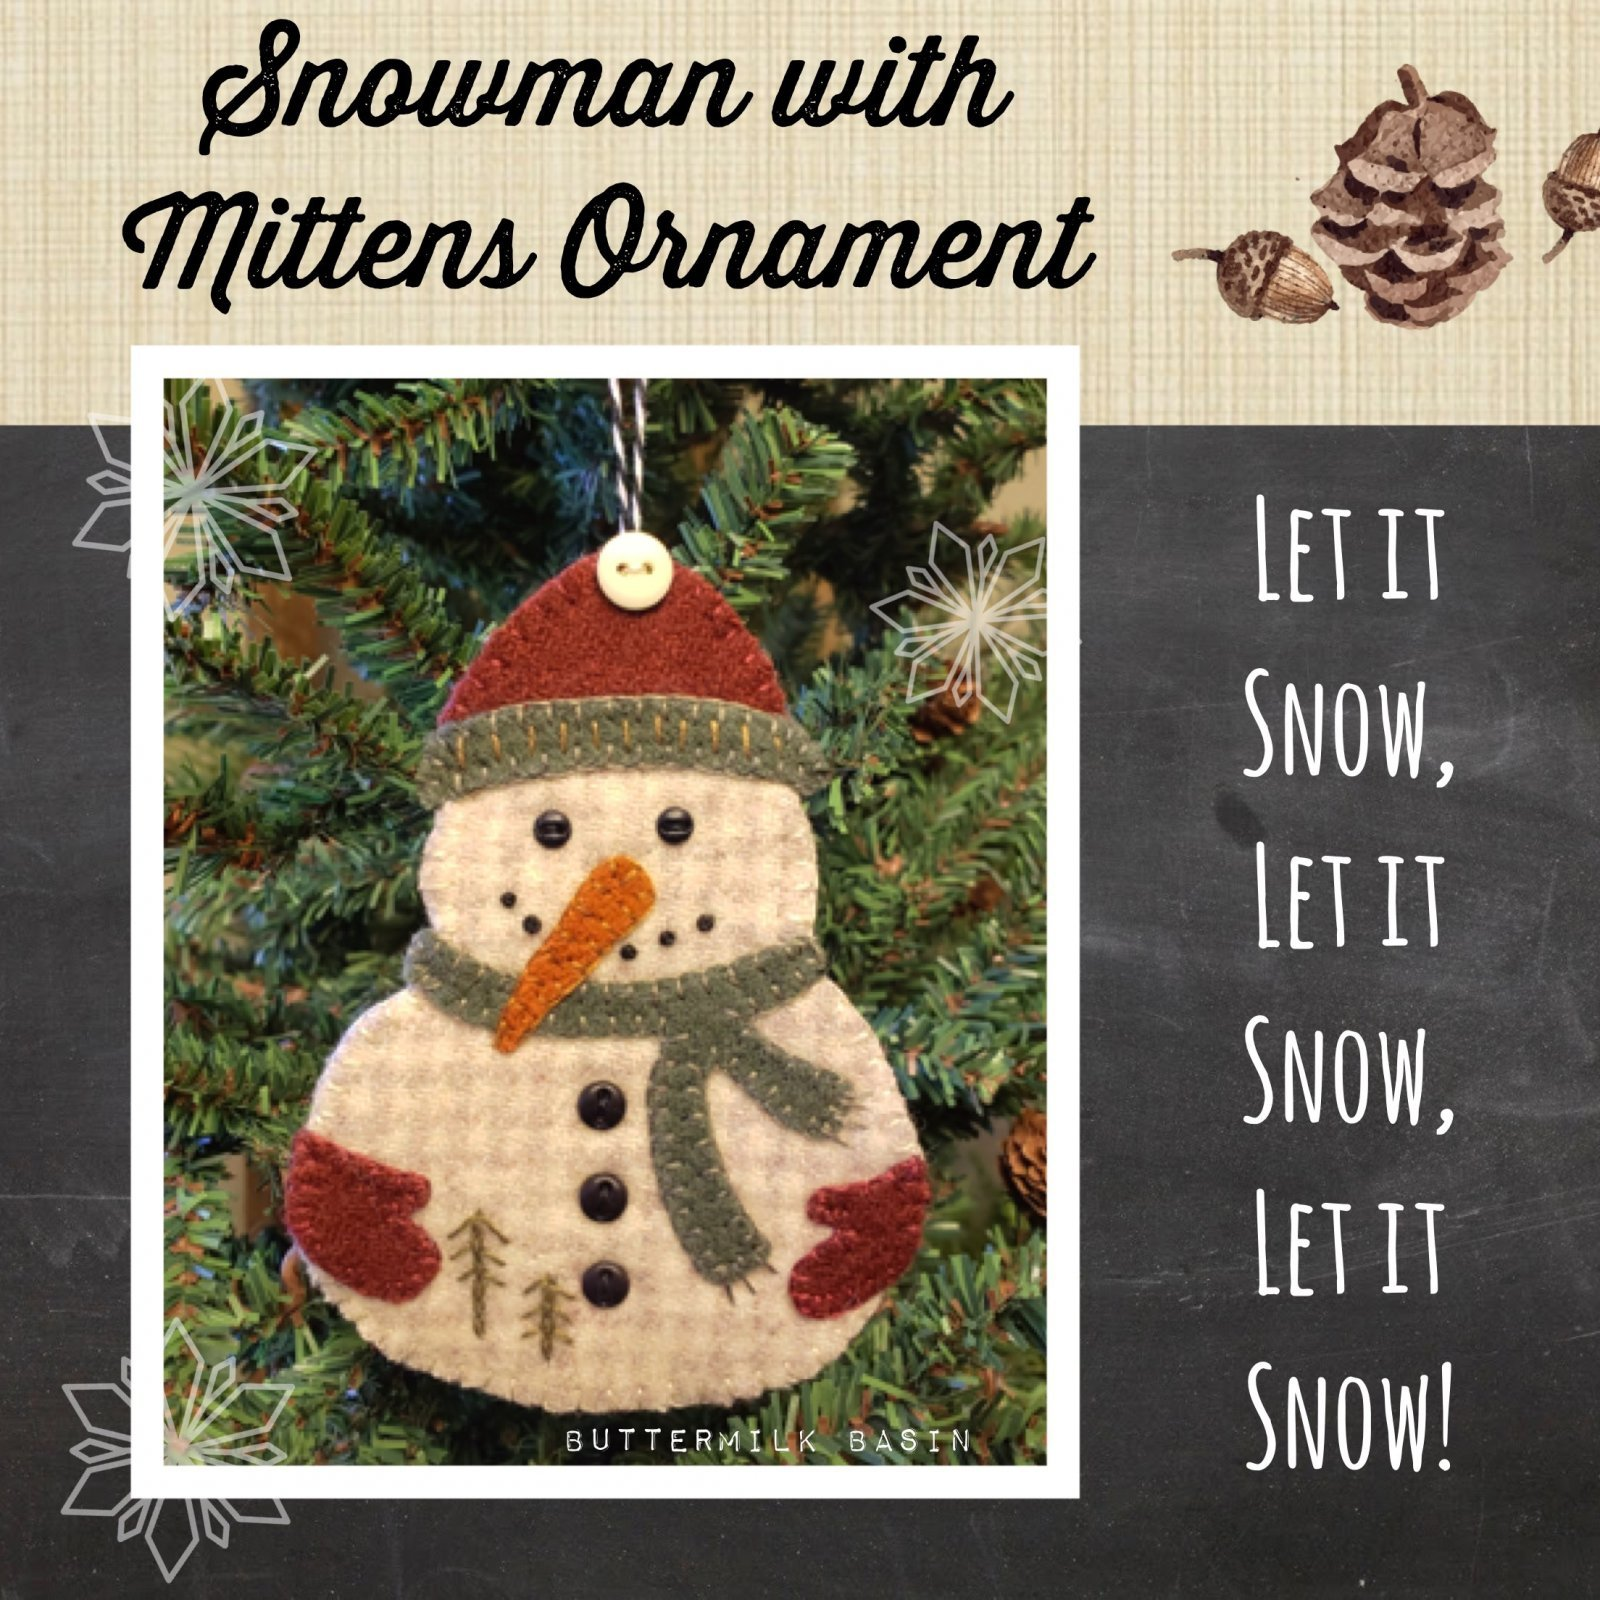 Snowman with Mittens Ornament